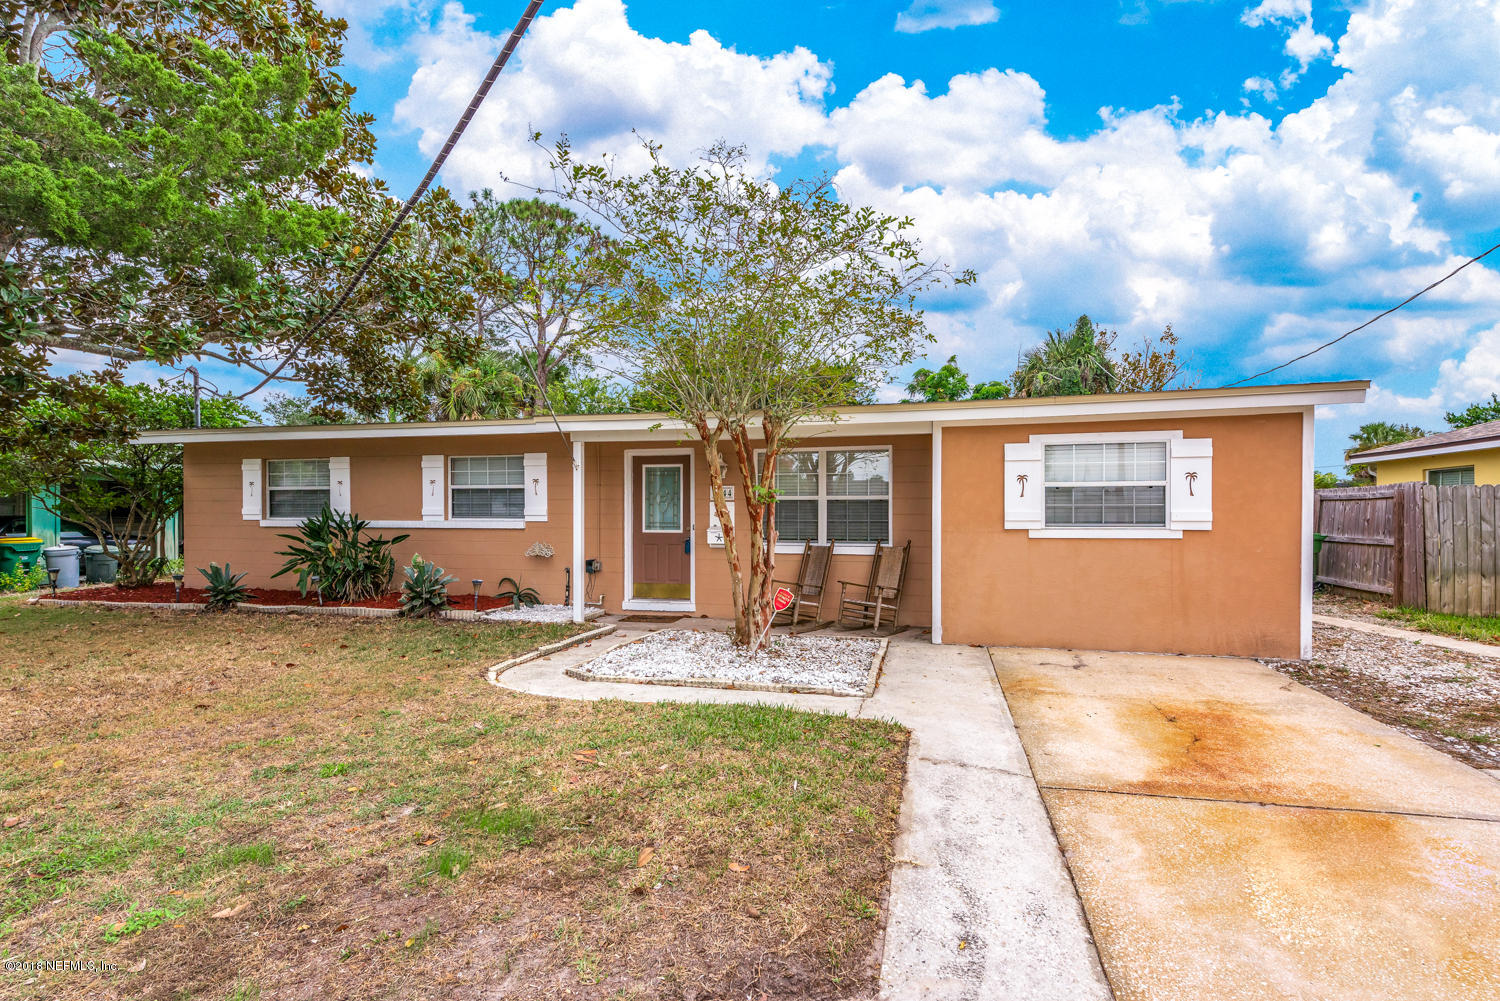 1044 15TH, JACKSONVILLE BEACH, FLORIDA 32250, 4 Bedrooms Bedrooms, ,1 BathroomBathrooms,Residential - single family,For sale,15TH,963166